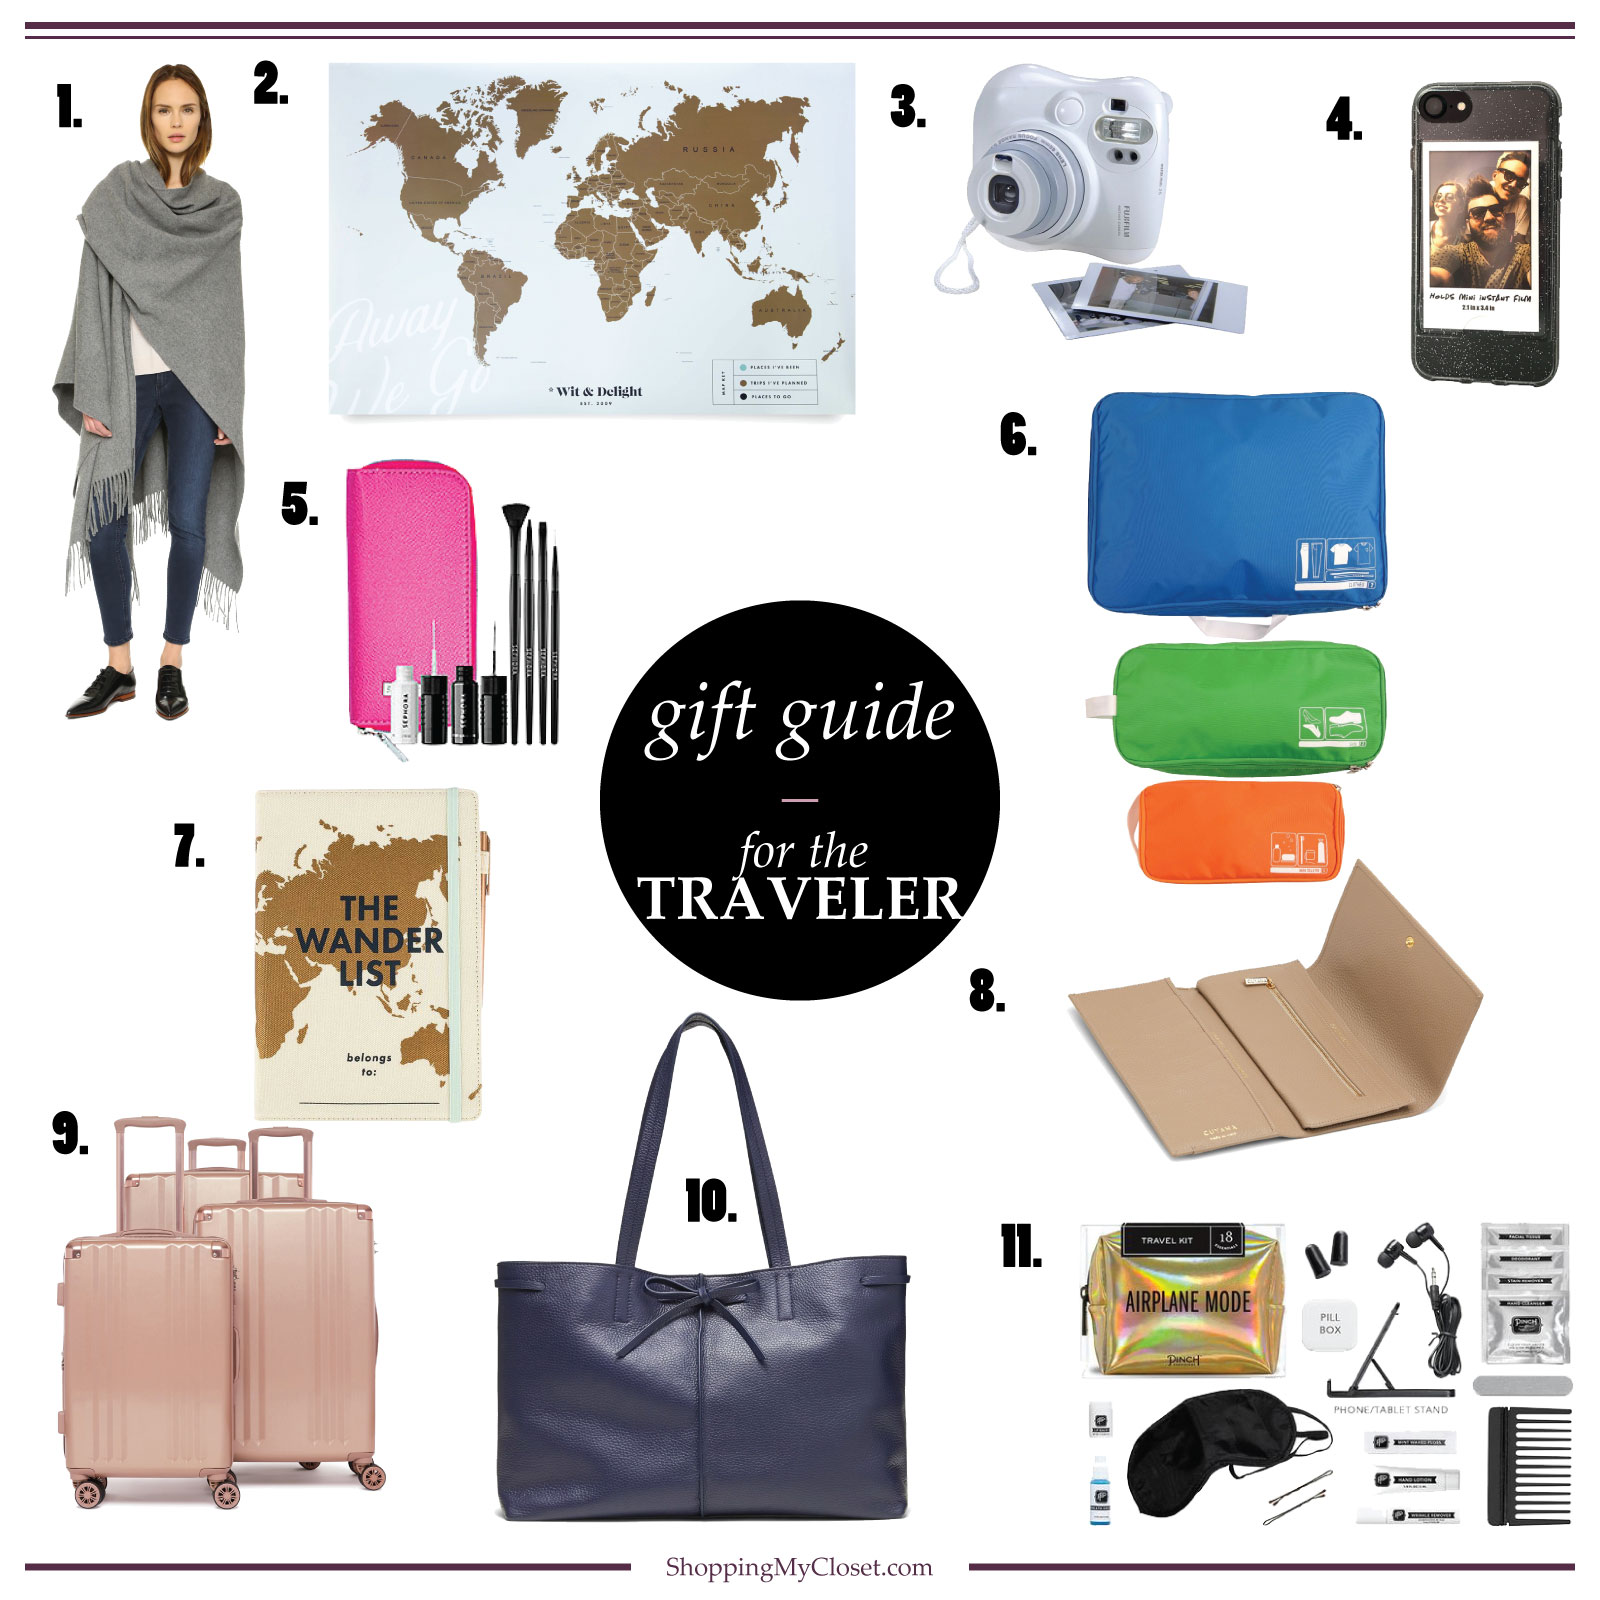 For the traveler or jetsetter {gift guide} | see all the ideas at www.shoppingmycloset.com